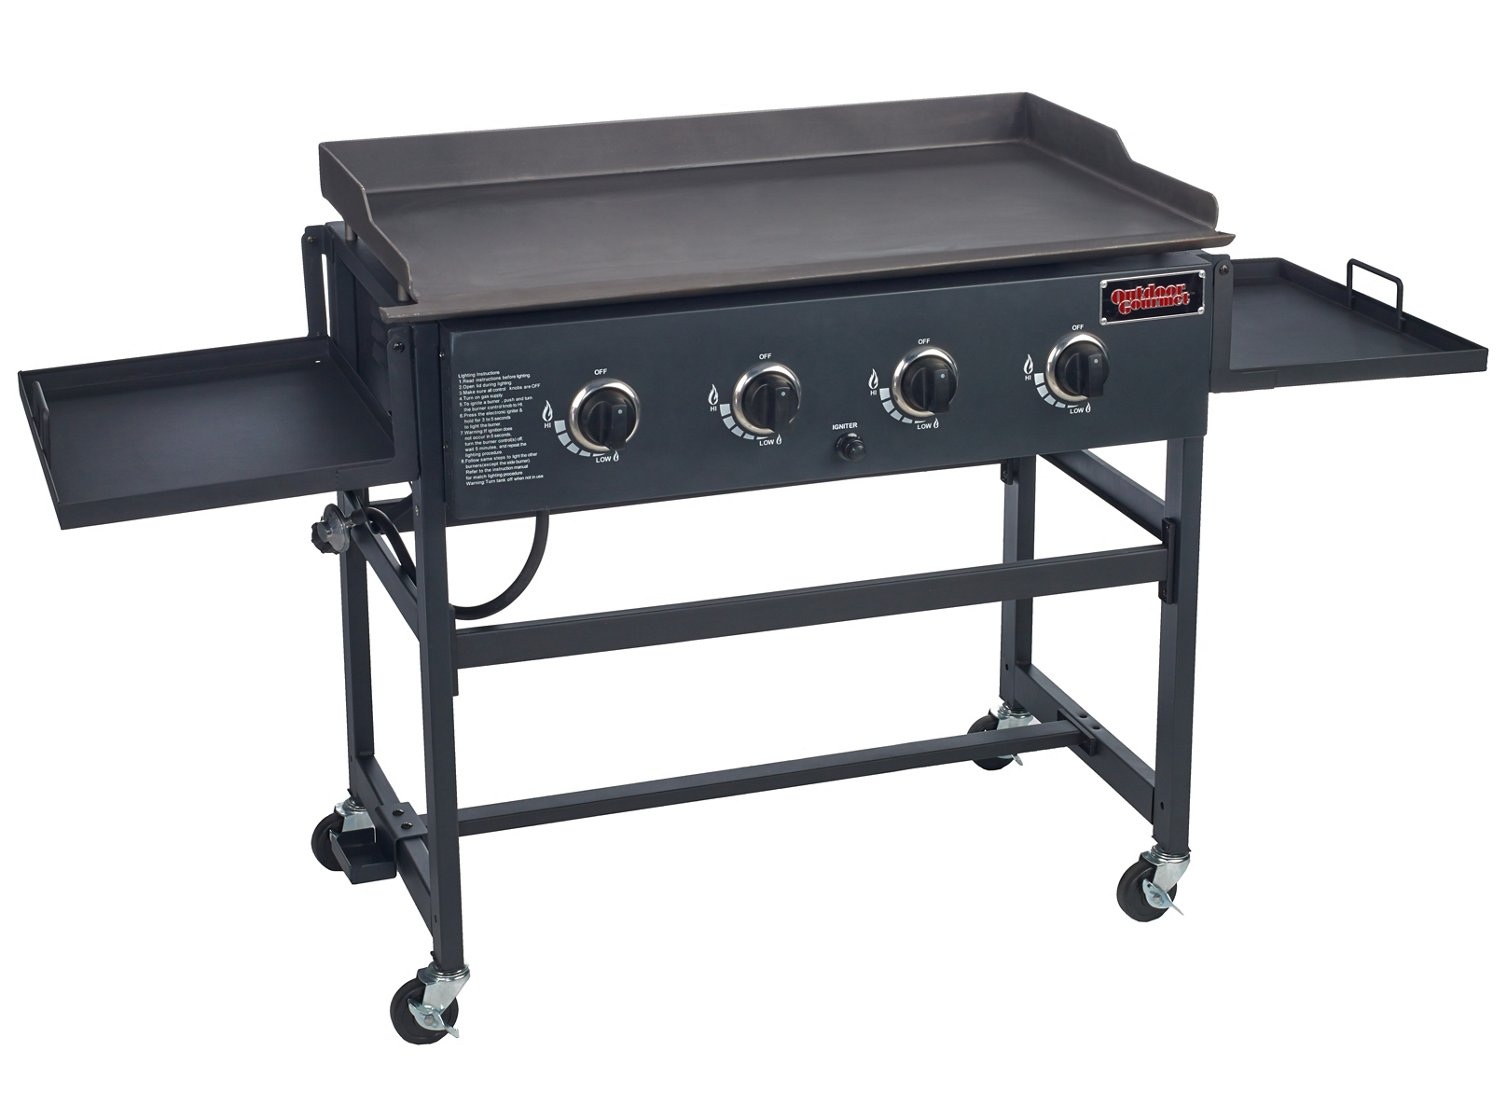 Outdoor Gourmet 36 In Griddle   View Number 1 ...